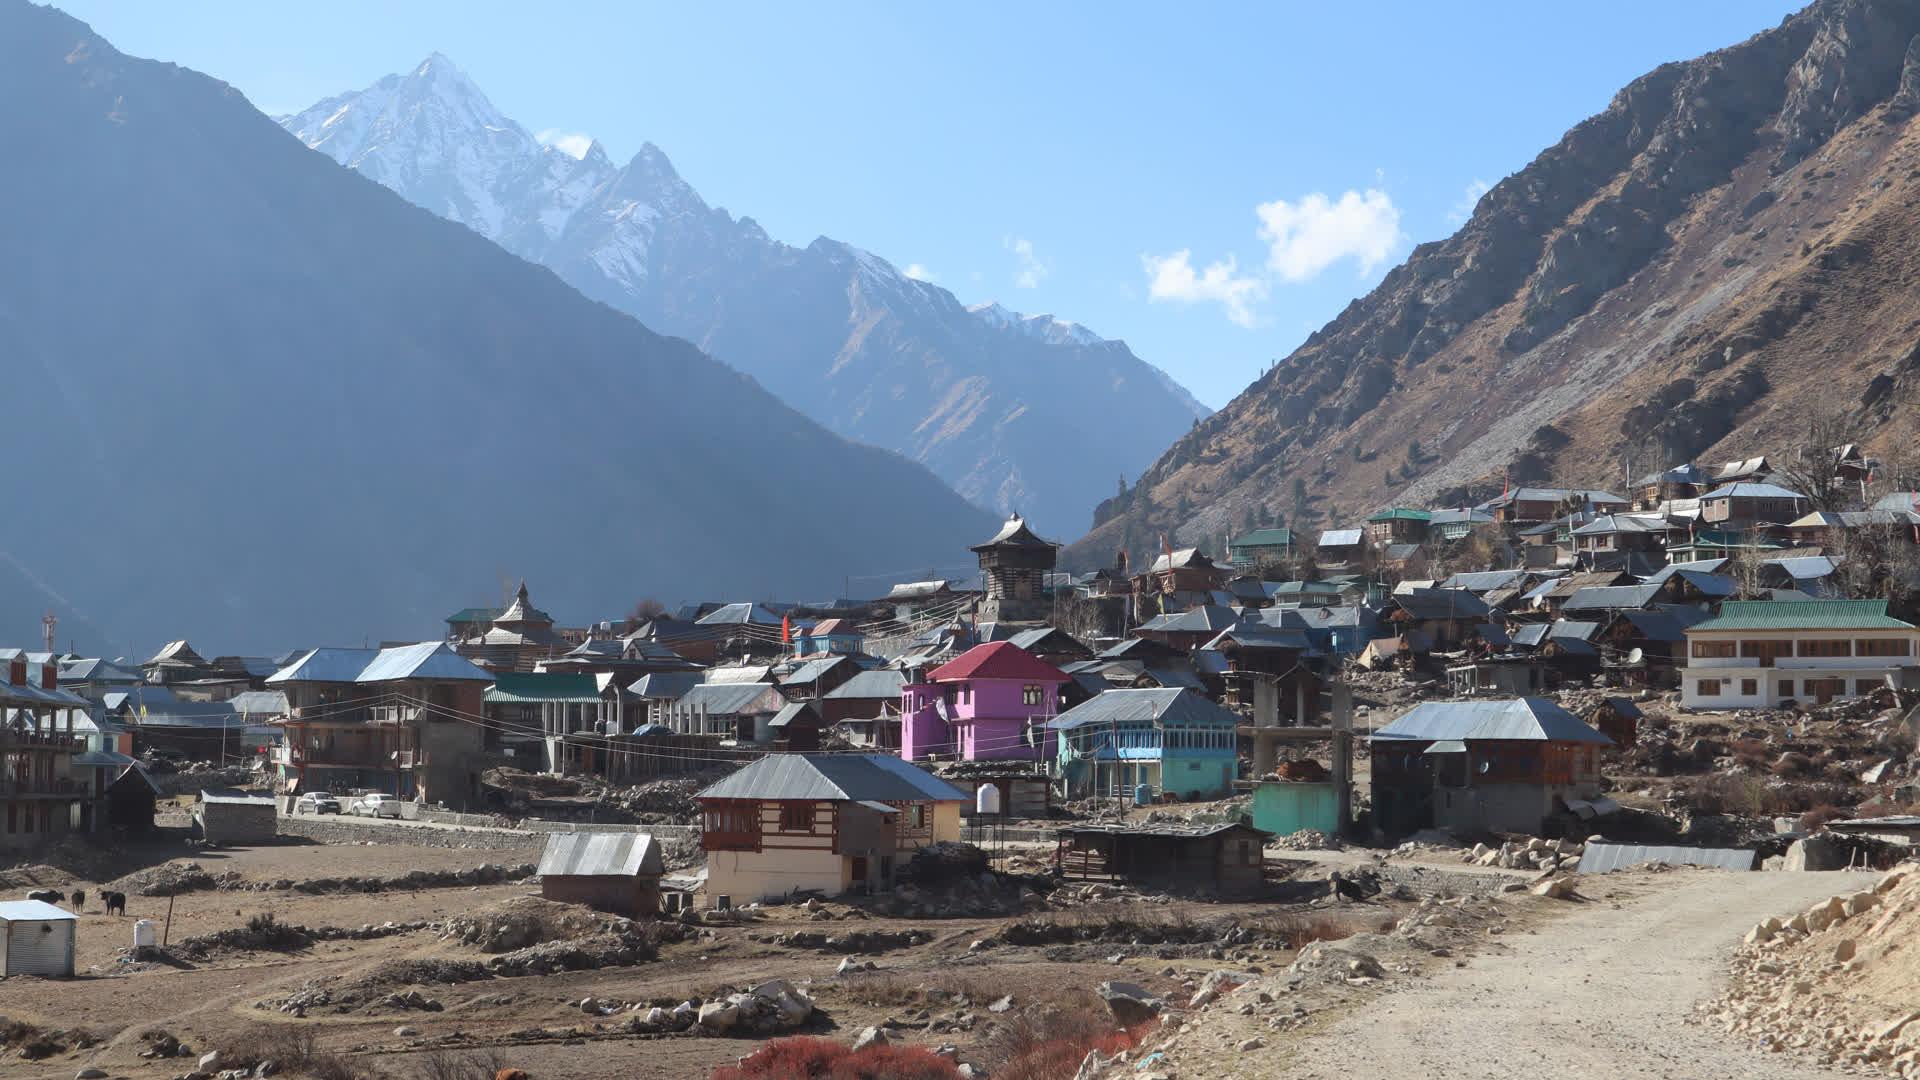 Chitkul: The Village on the Edge of India